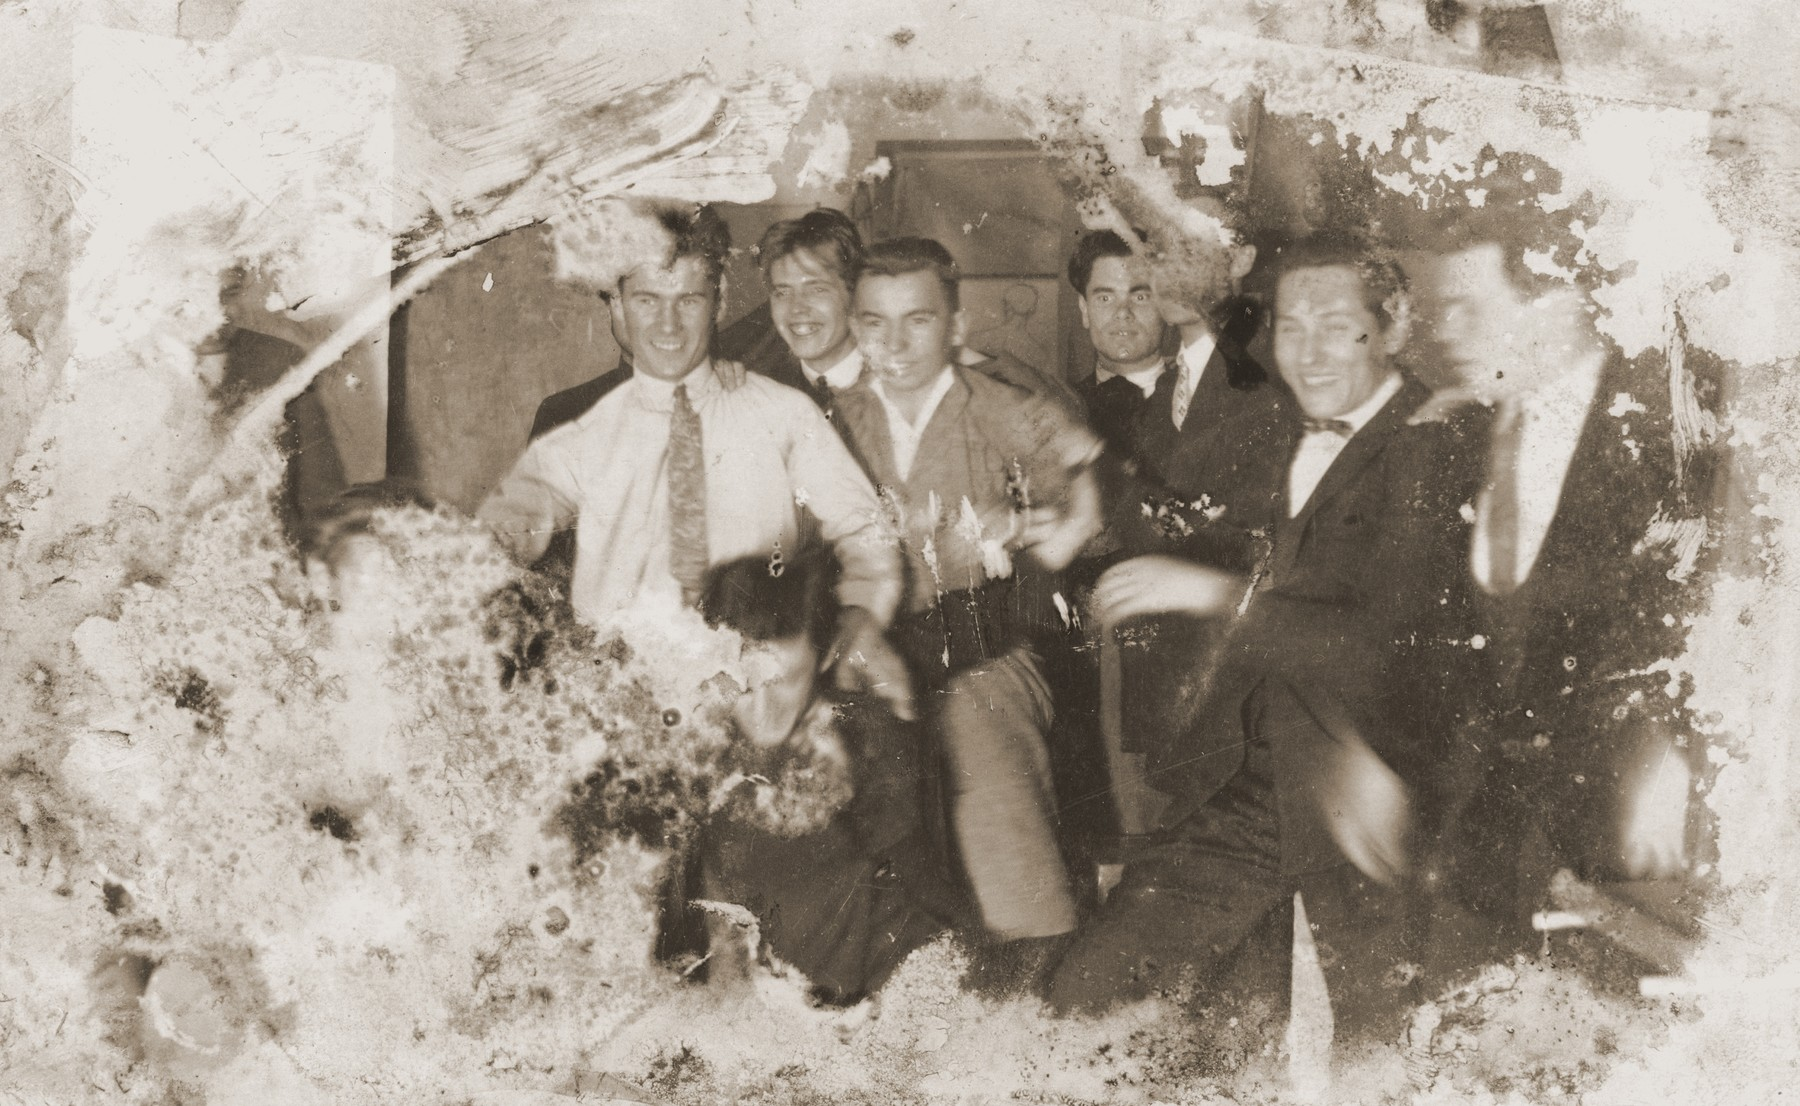 Damaged photograph of a group of male friends in Kovno, Lithuania that survived the destruction of the Kovno ghetto.  Among those pictured is the artist Jacob Lifschitz (center).  The photograph was buried with the artist's drawings shortly before the liquidation of the ghetto, and retrieved by his wife after the liberation.